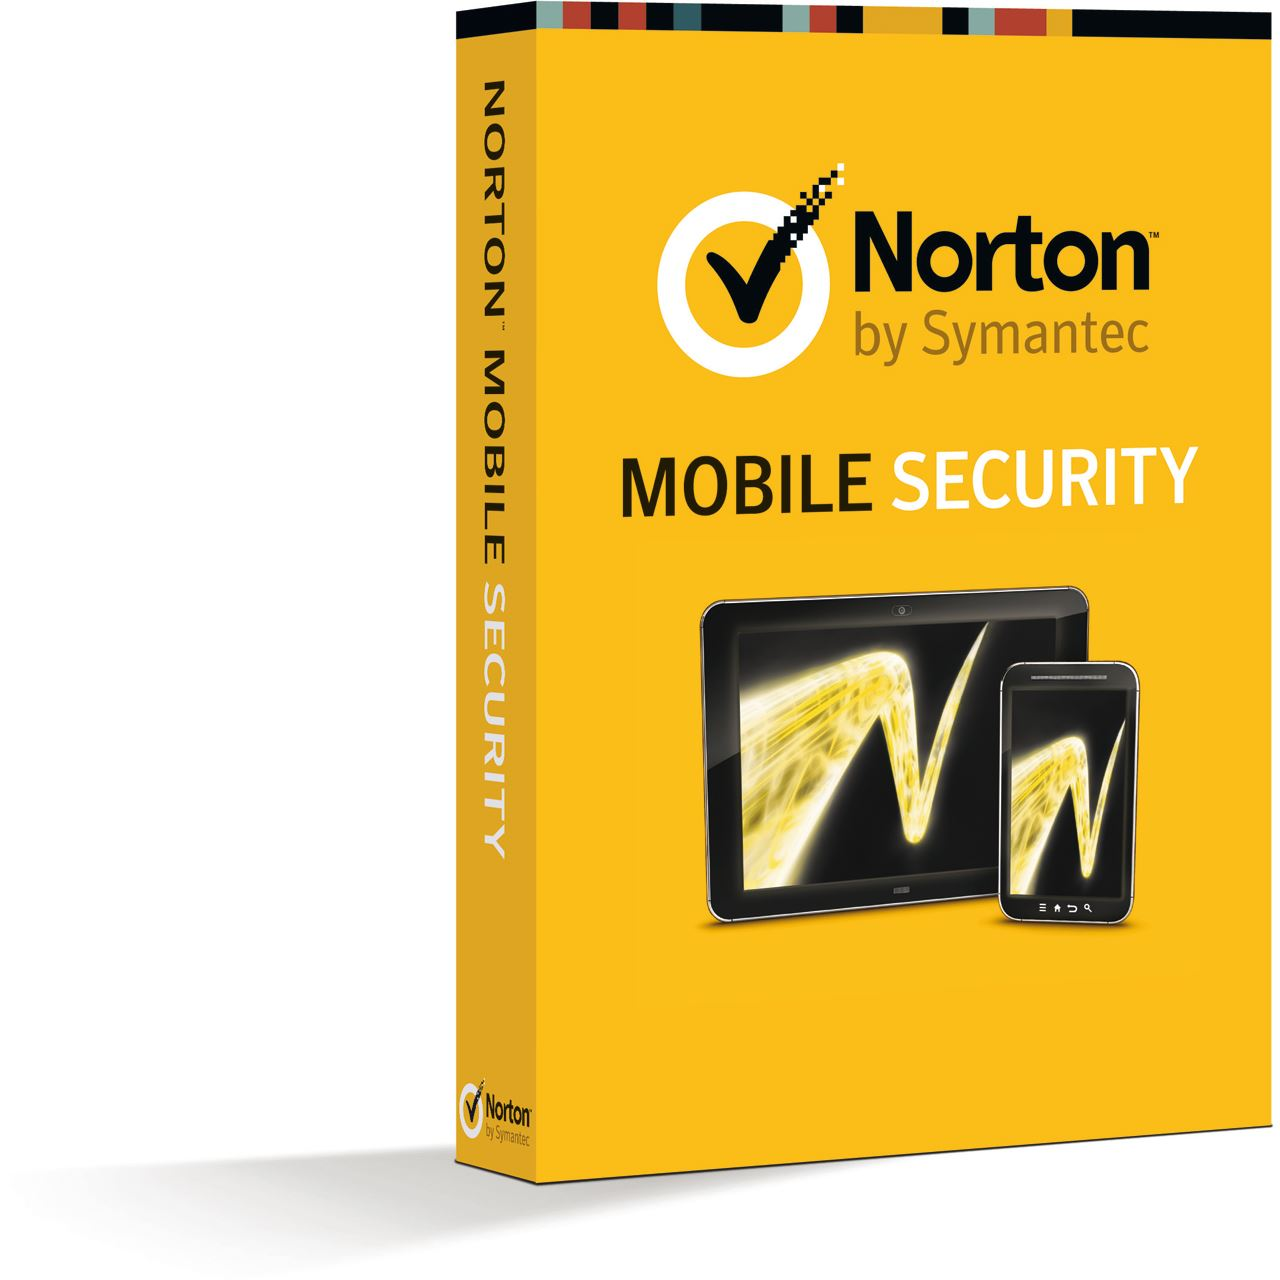 On your mobile device, go to the Norton Mobile Security website. Do one of the following: If you have not registered your Norton Mobile Security purchase with your Norton account, tap Register your purchase. If you have already registered your Norton Mobile Security purchase with your Norton account, tap Click here to install Norton Mobile Security.